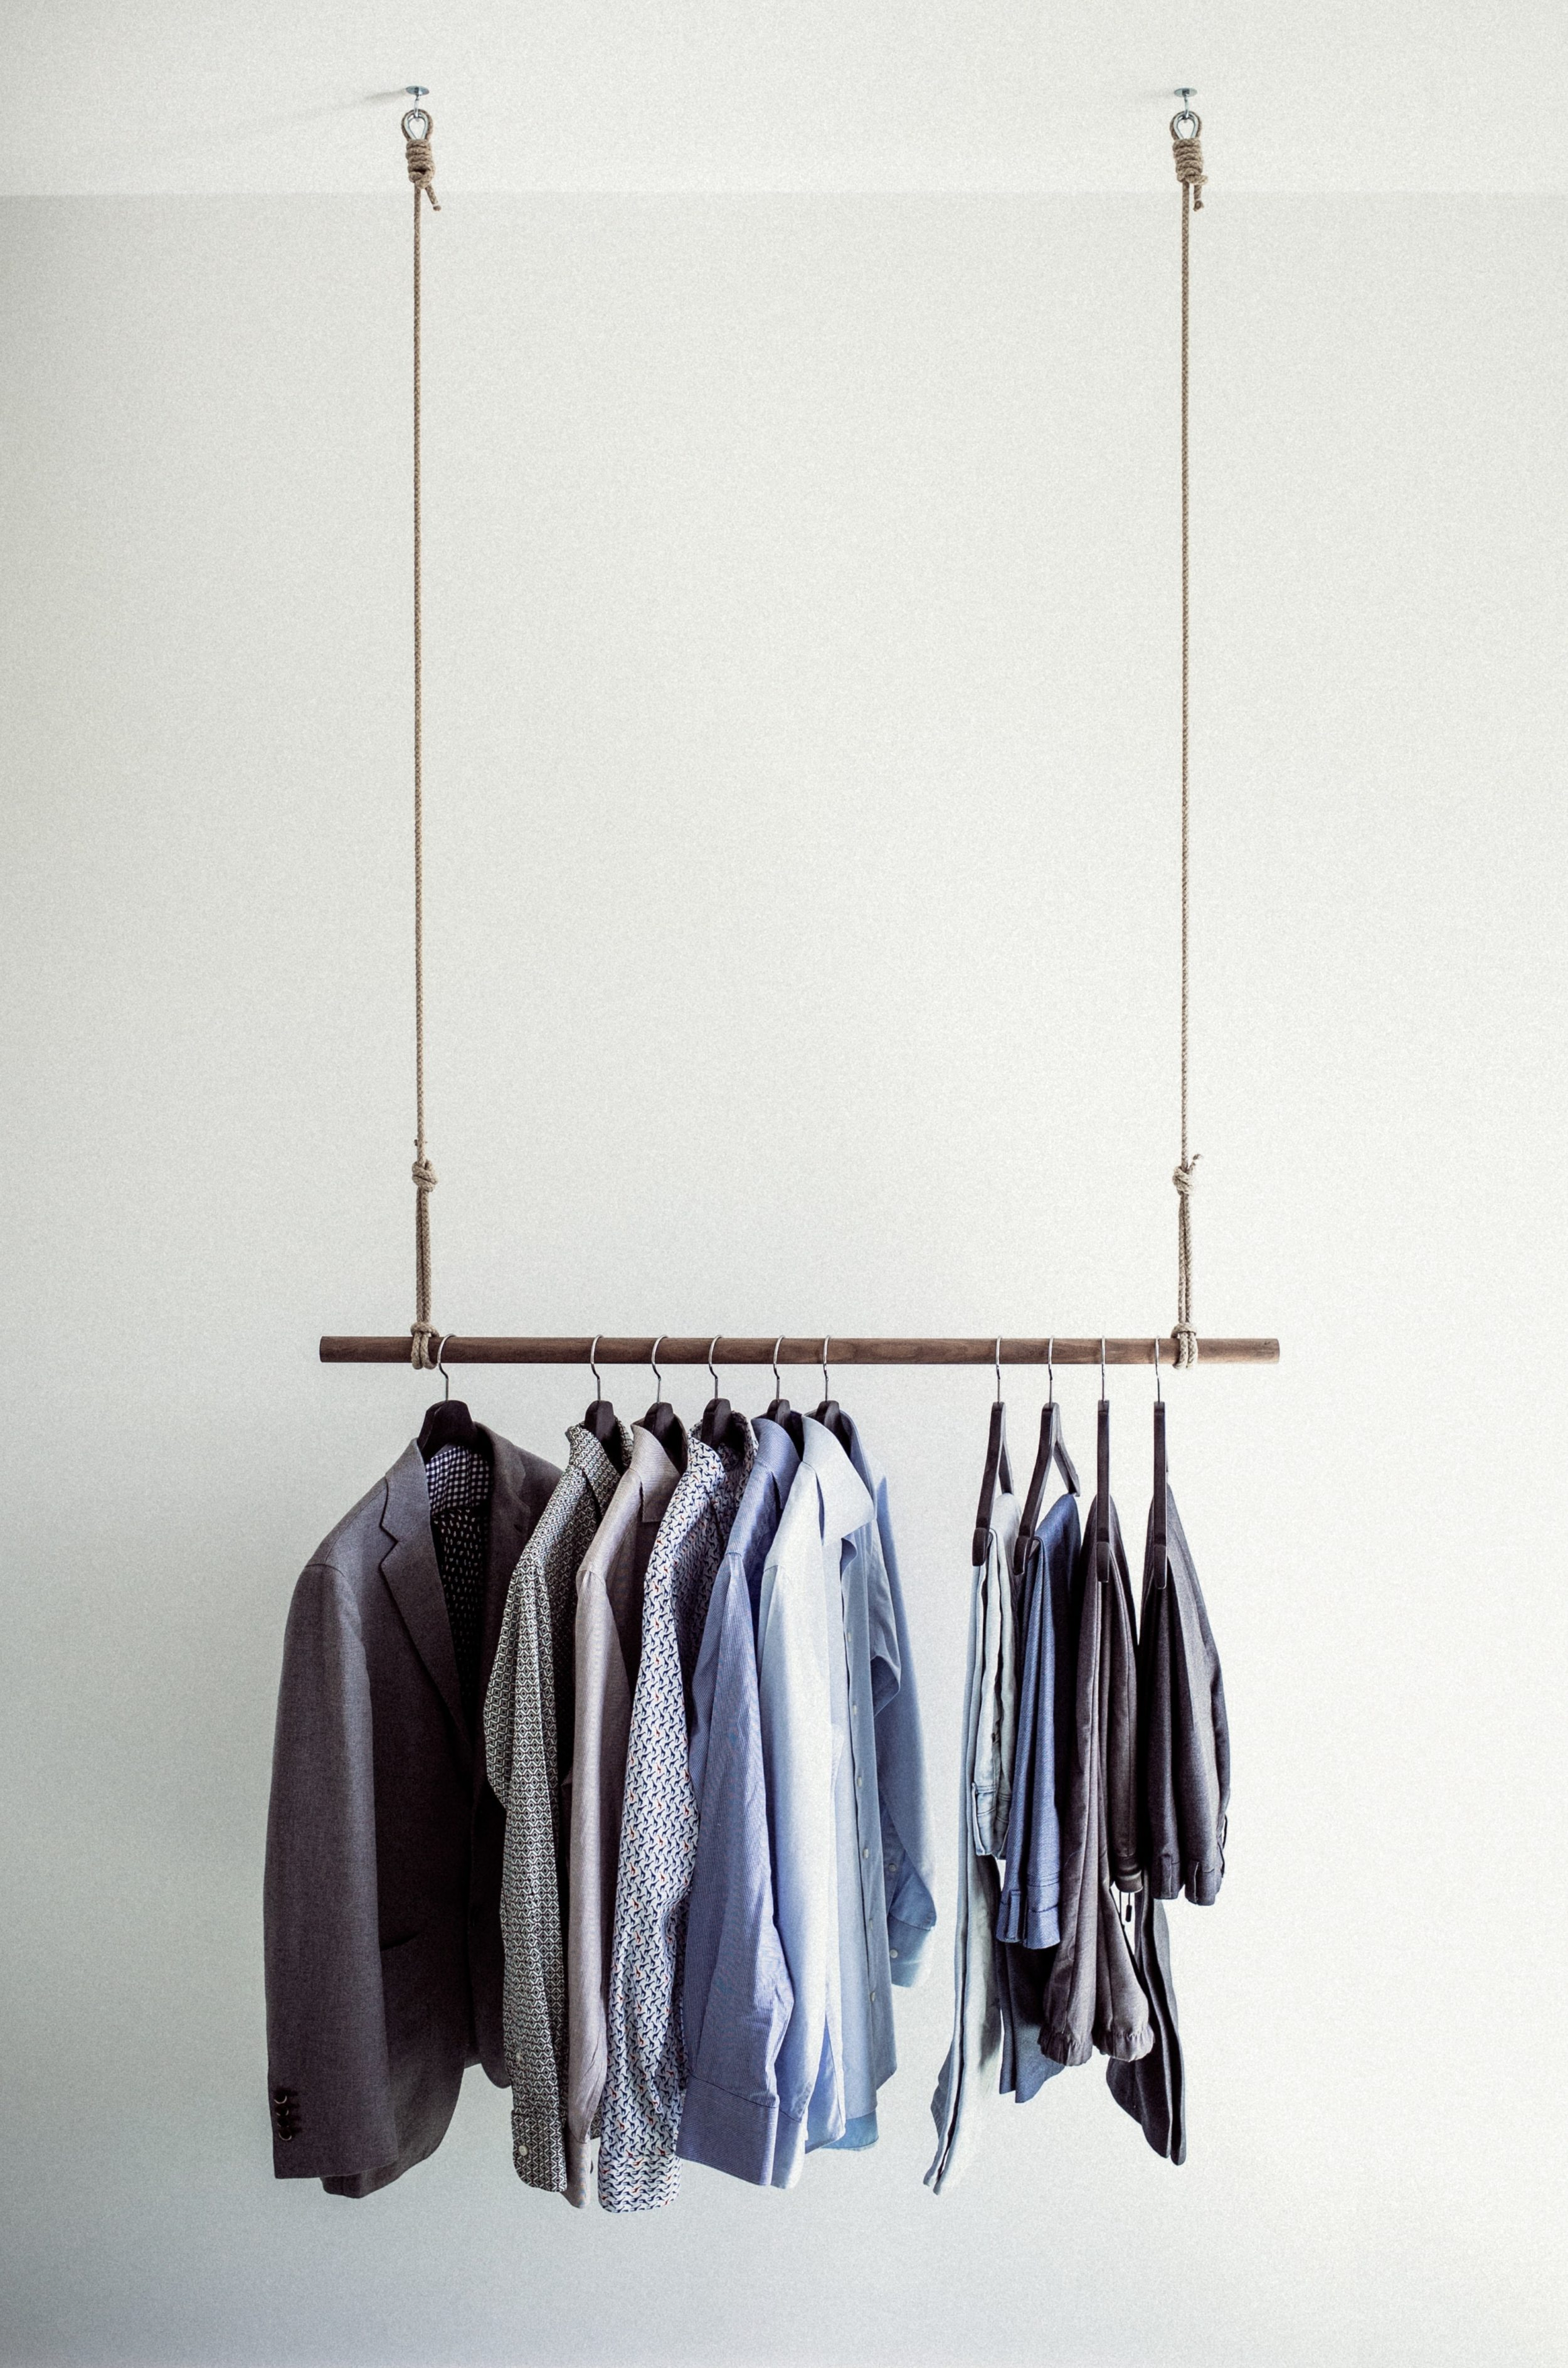 Clothes hanging up